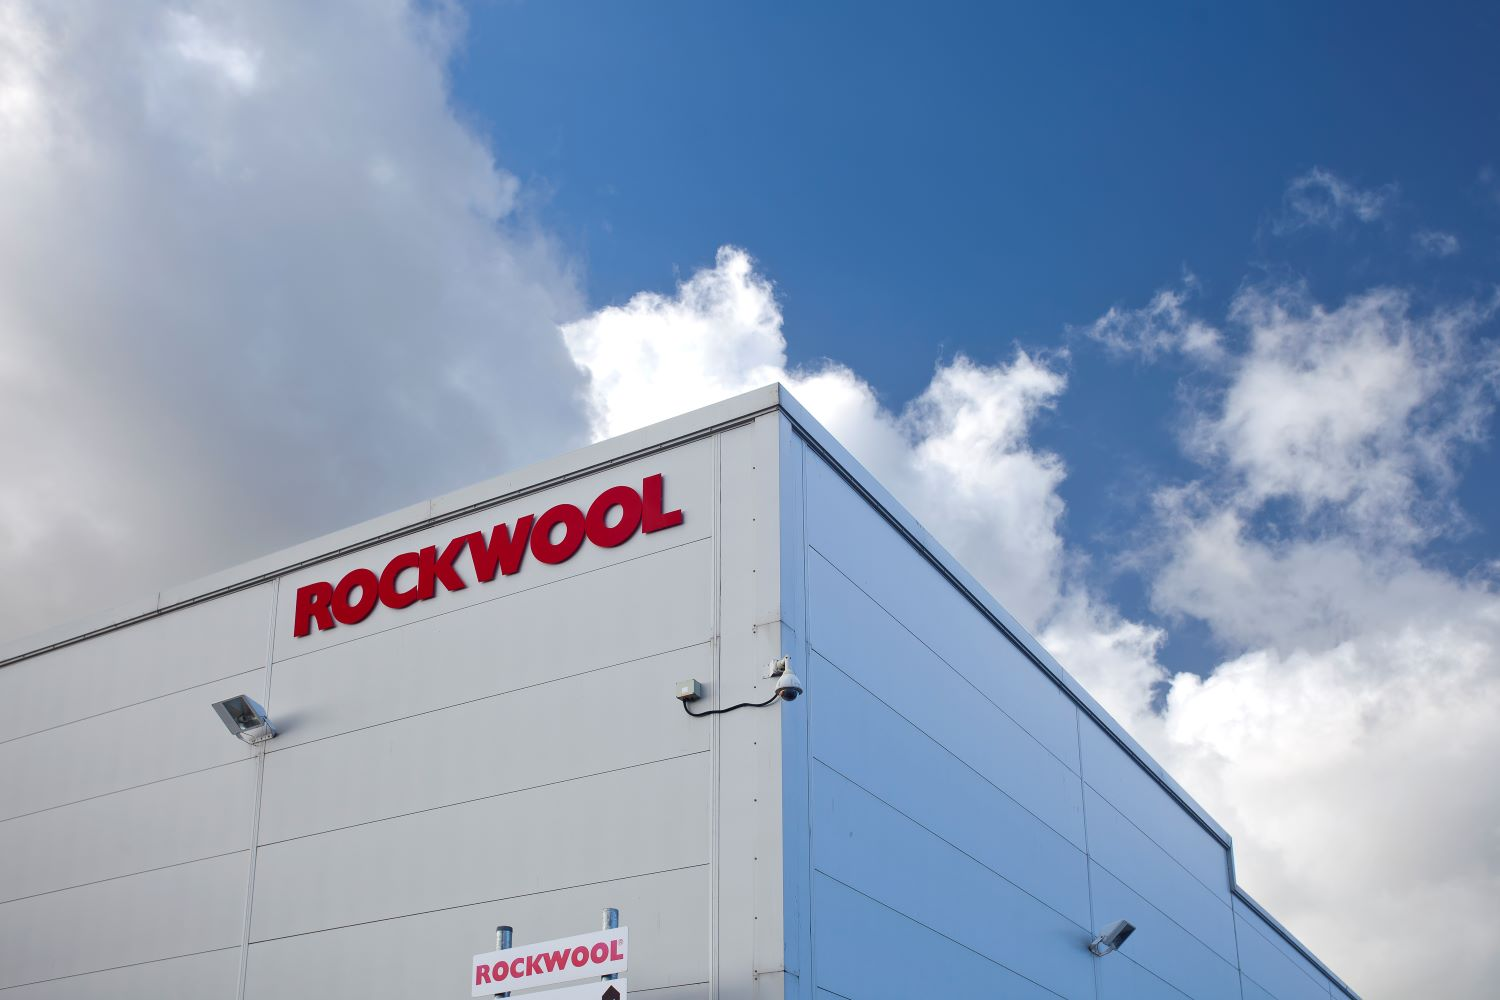 ROCKWOOL named as finalist in prestigious Lloyds Bank National Business Awards